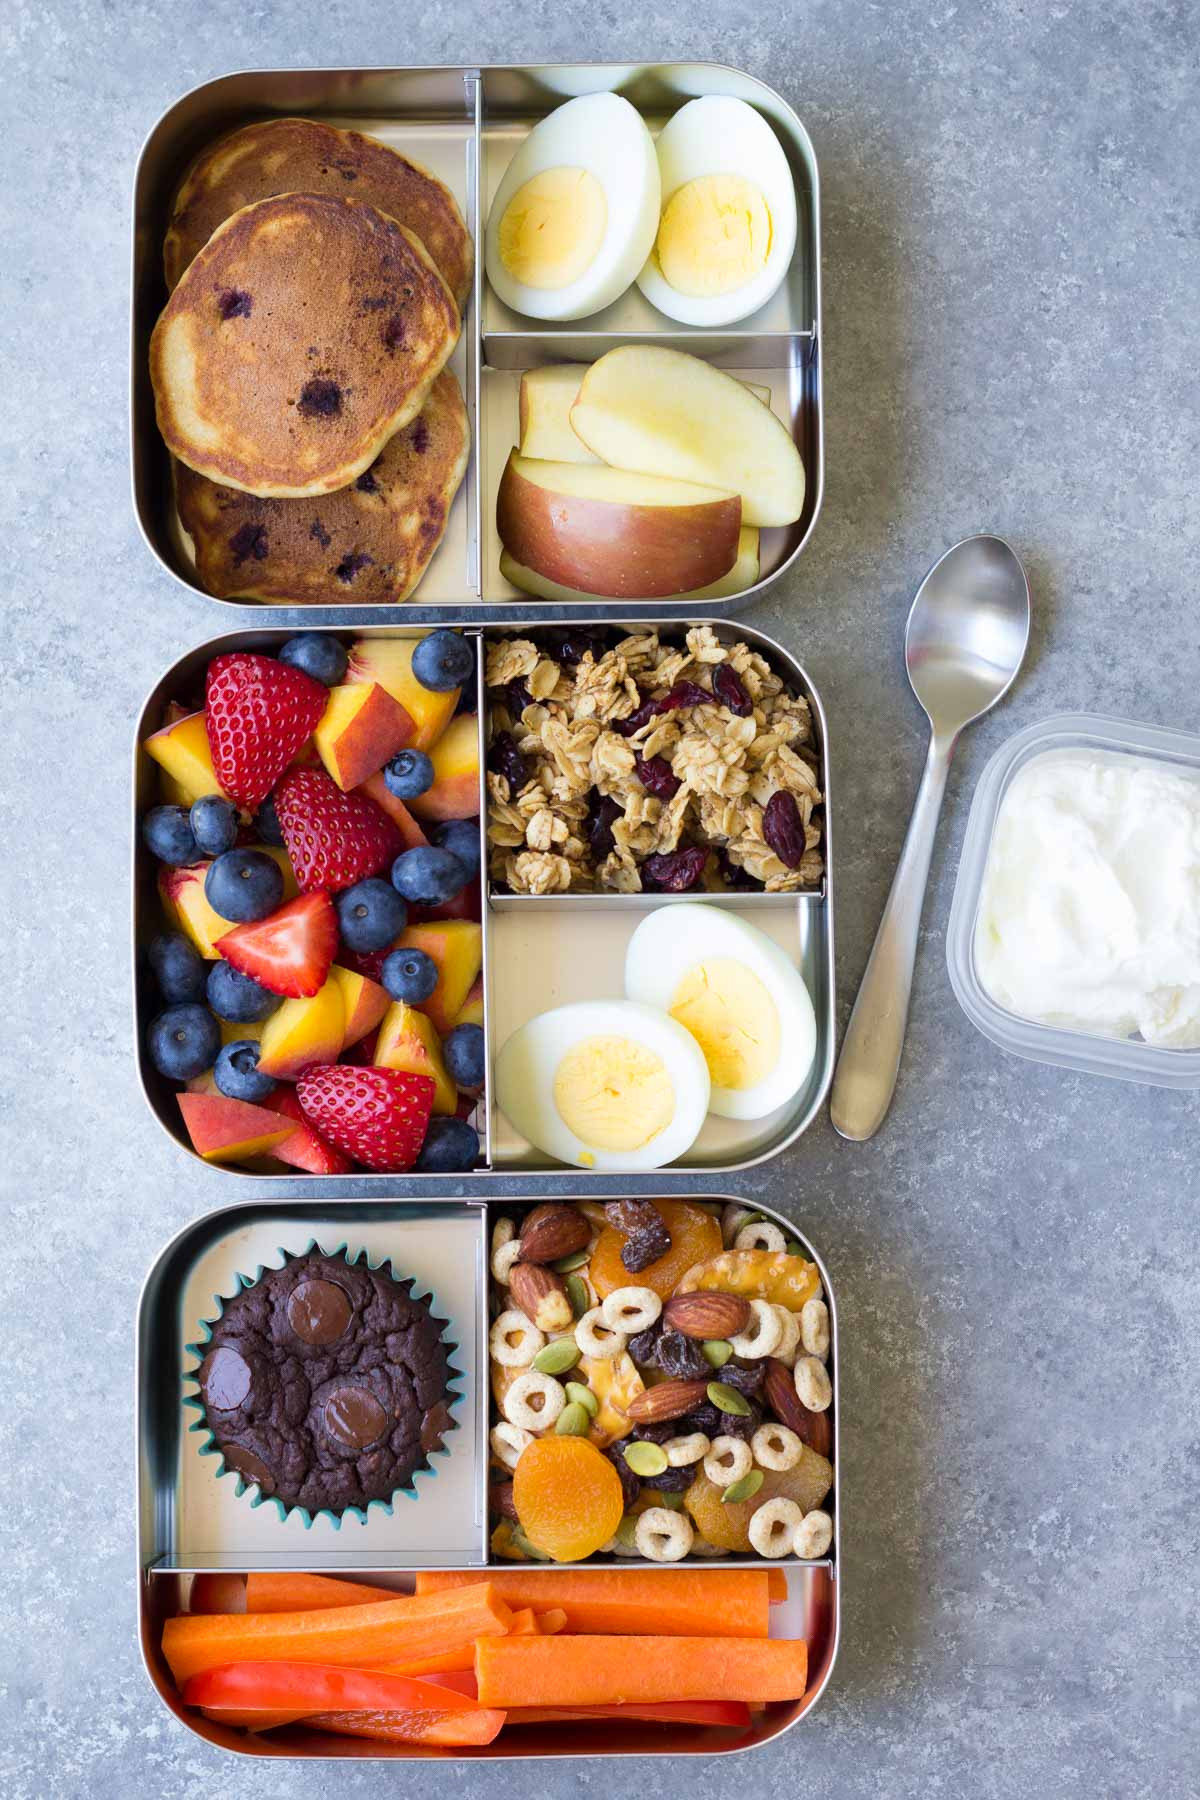 Healthy Lunches For Kids  10 More Healthy Lunch Ideas for Kids for the School Lunch